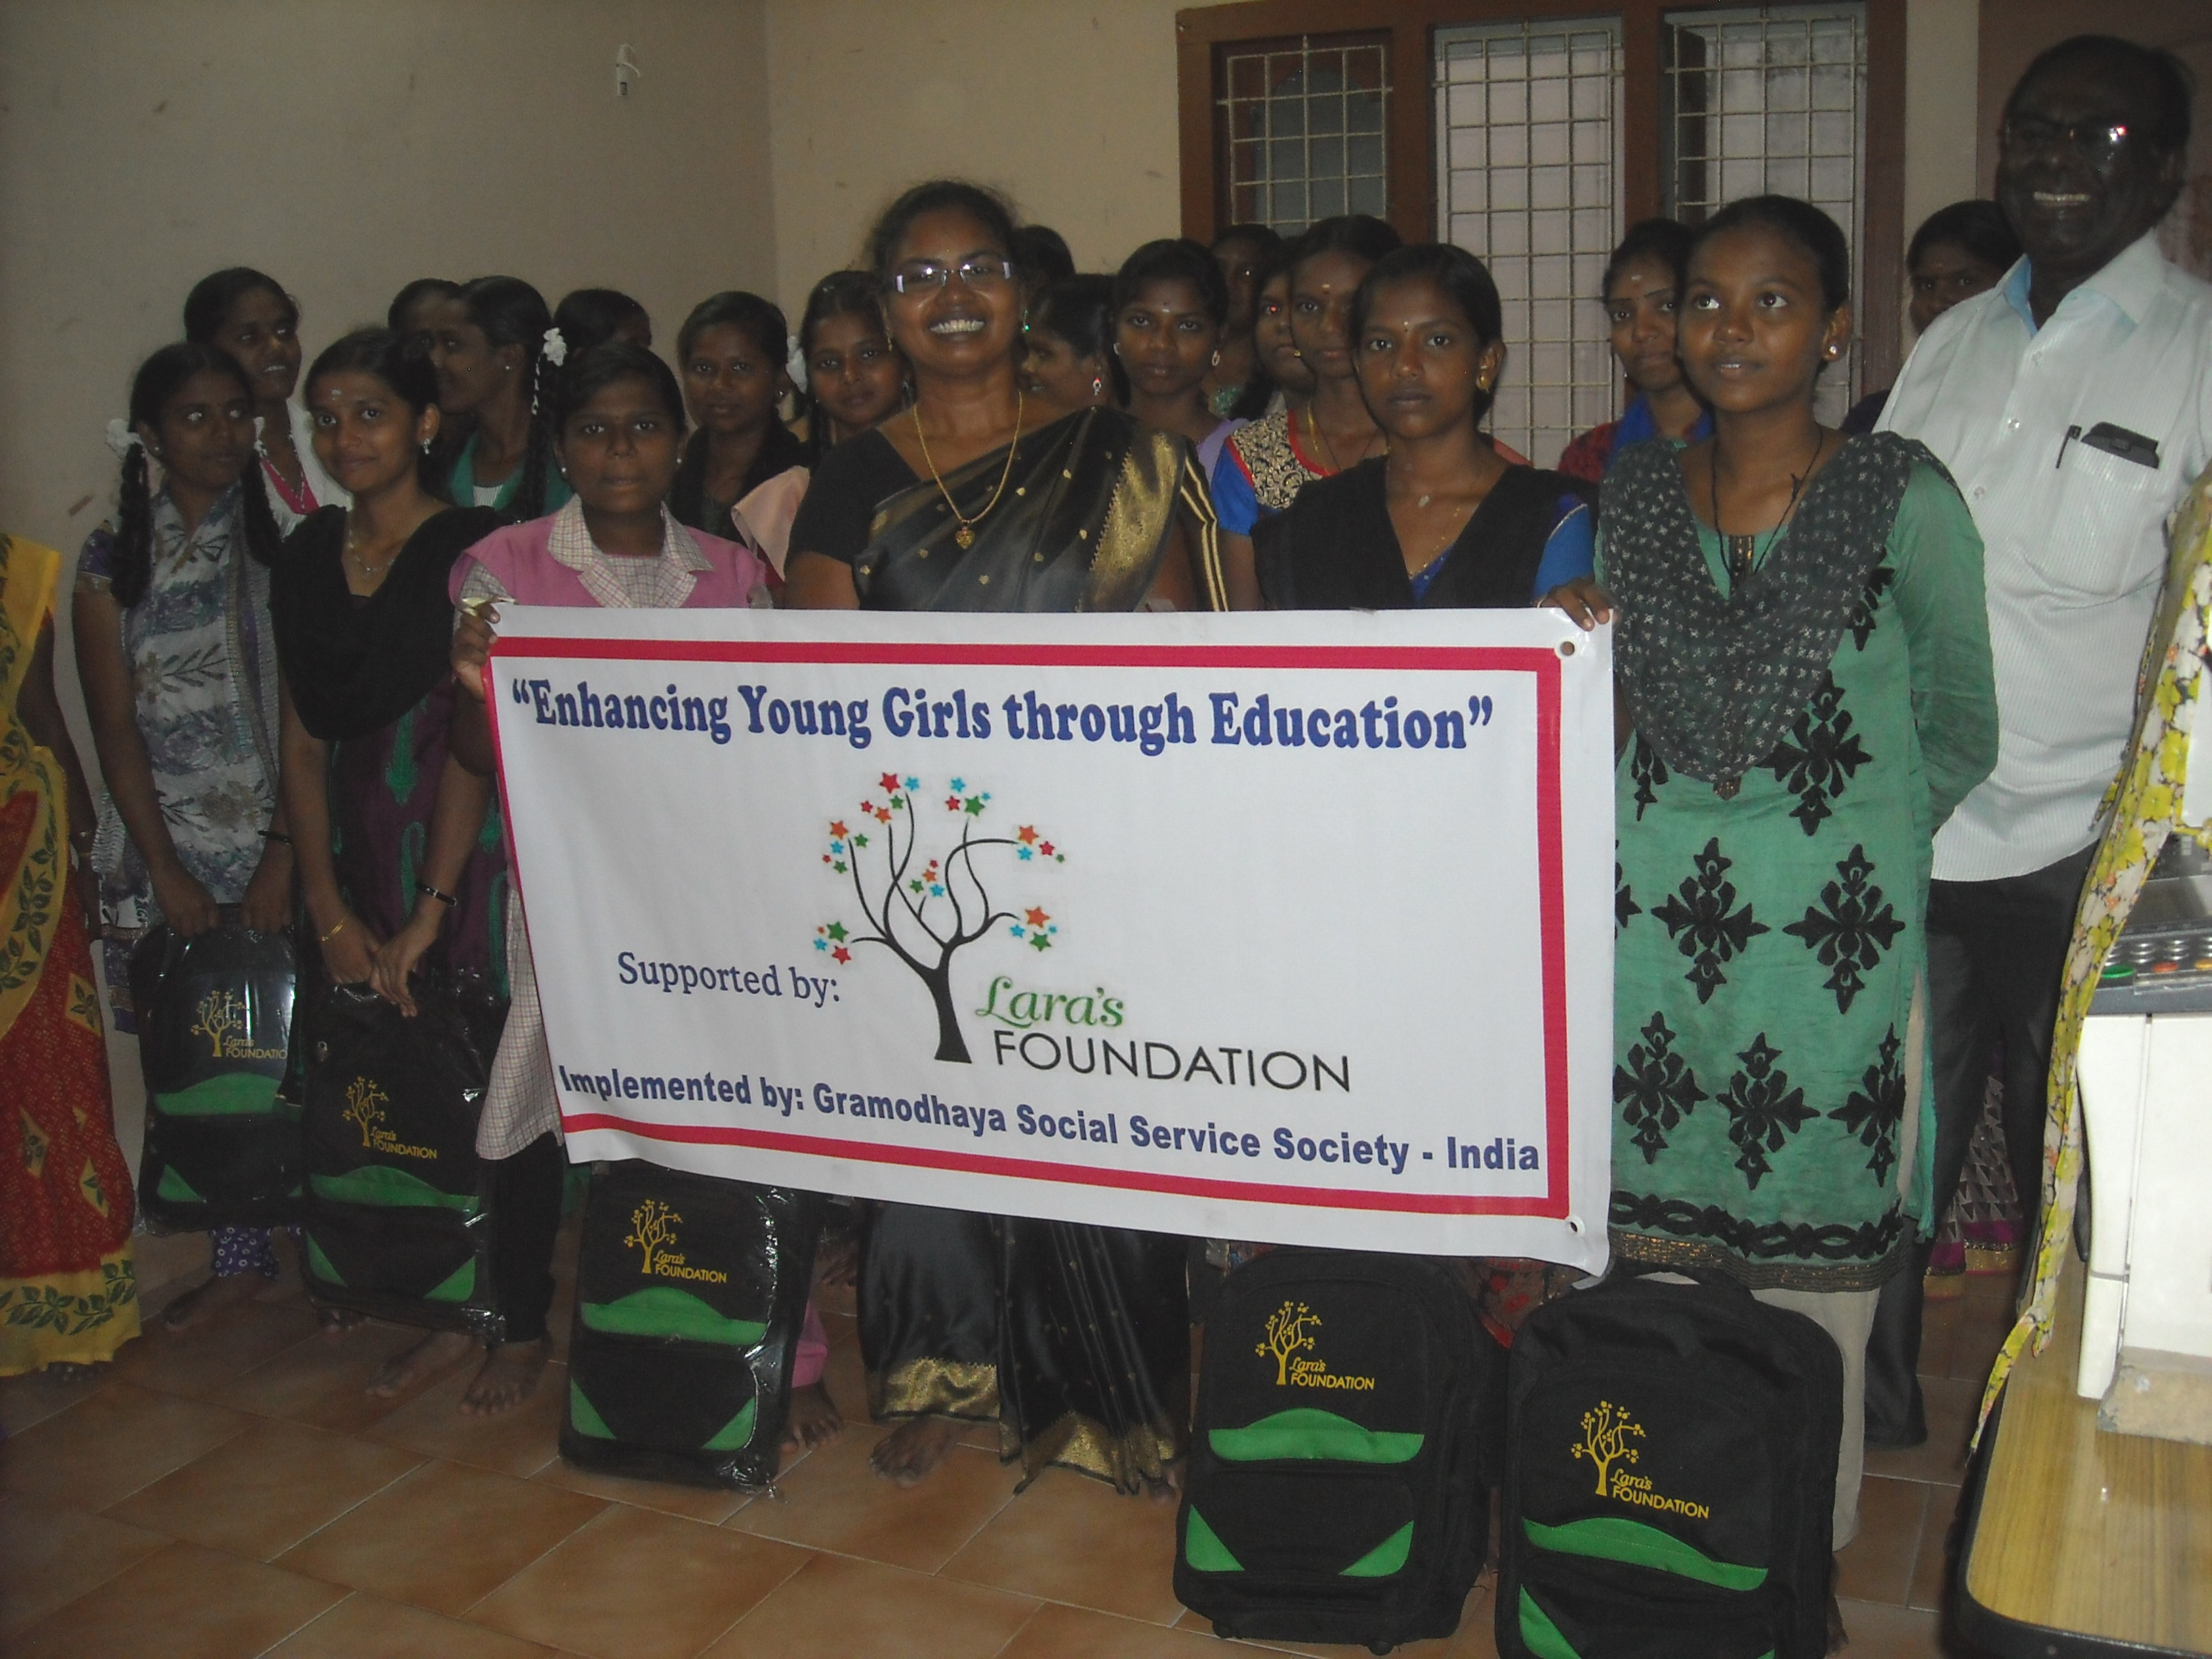 8. Group of +2 students supported